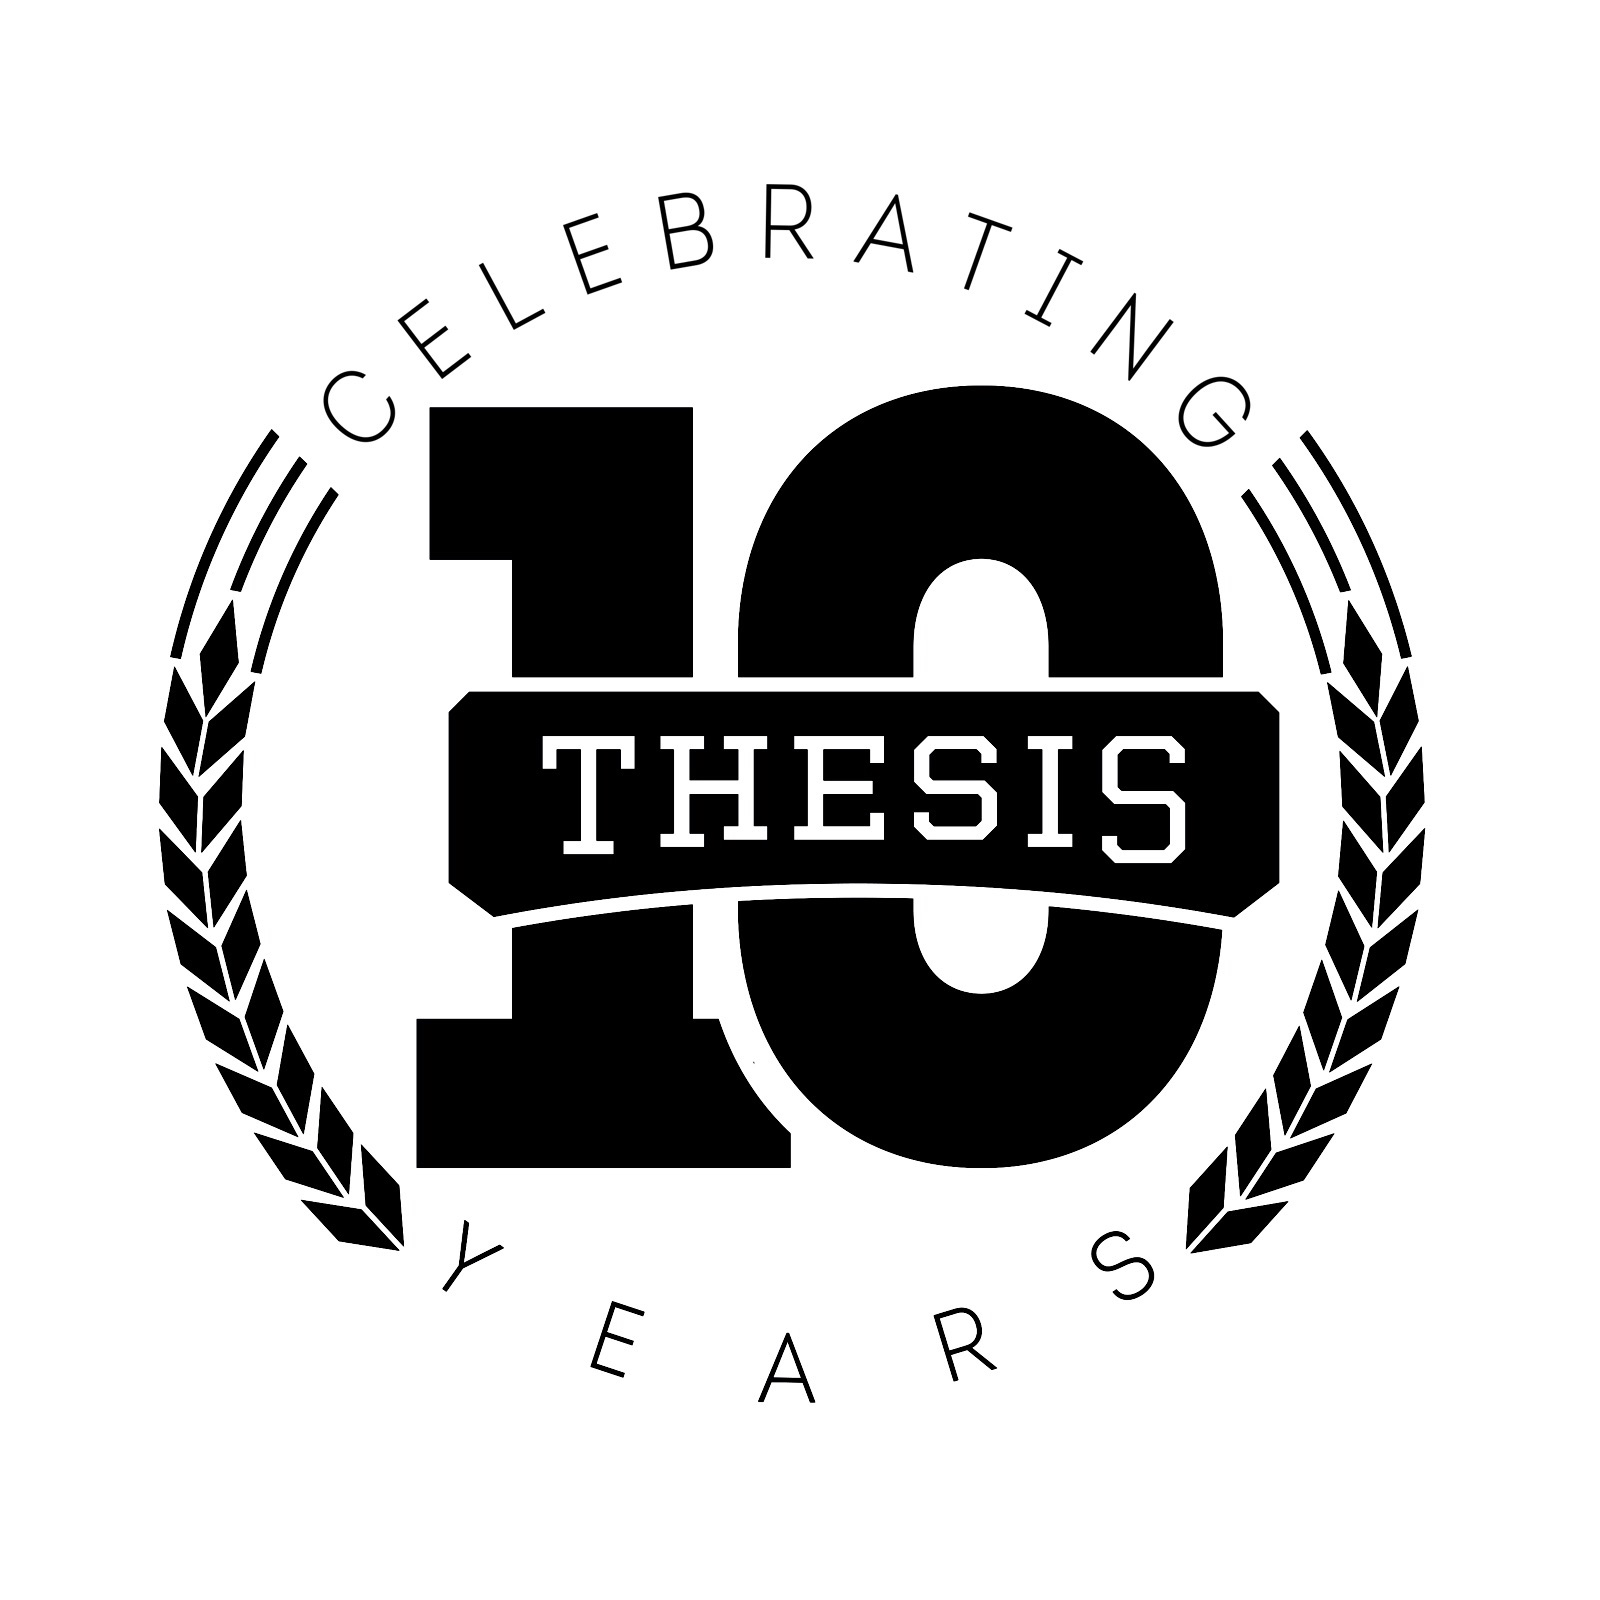 This is the second logo we released just recently. This logo was inspired by a wreath, yes a wreath. To explain this the purpose or the symbolism of a wreath has to do with the circle, how the circle represent many things like unity, focus and in our case time. Time in a sense of celebrating 10 years of Thesis. The wreath is often used at ceremonies like you have seen at the Olympic Games and in Greek Mythology.